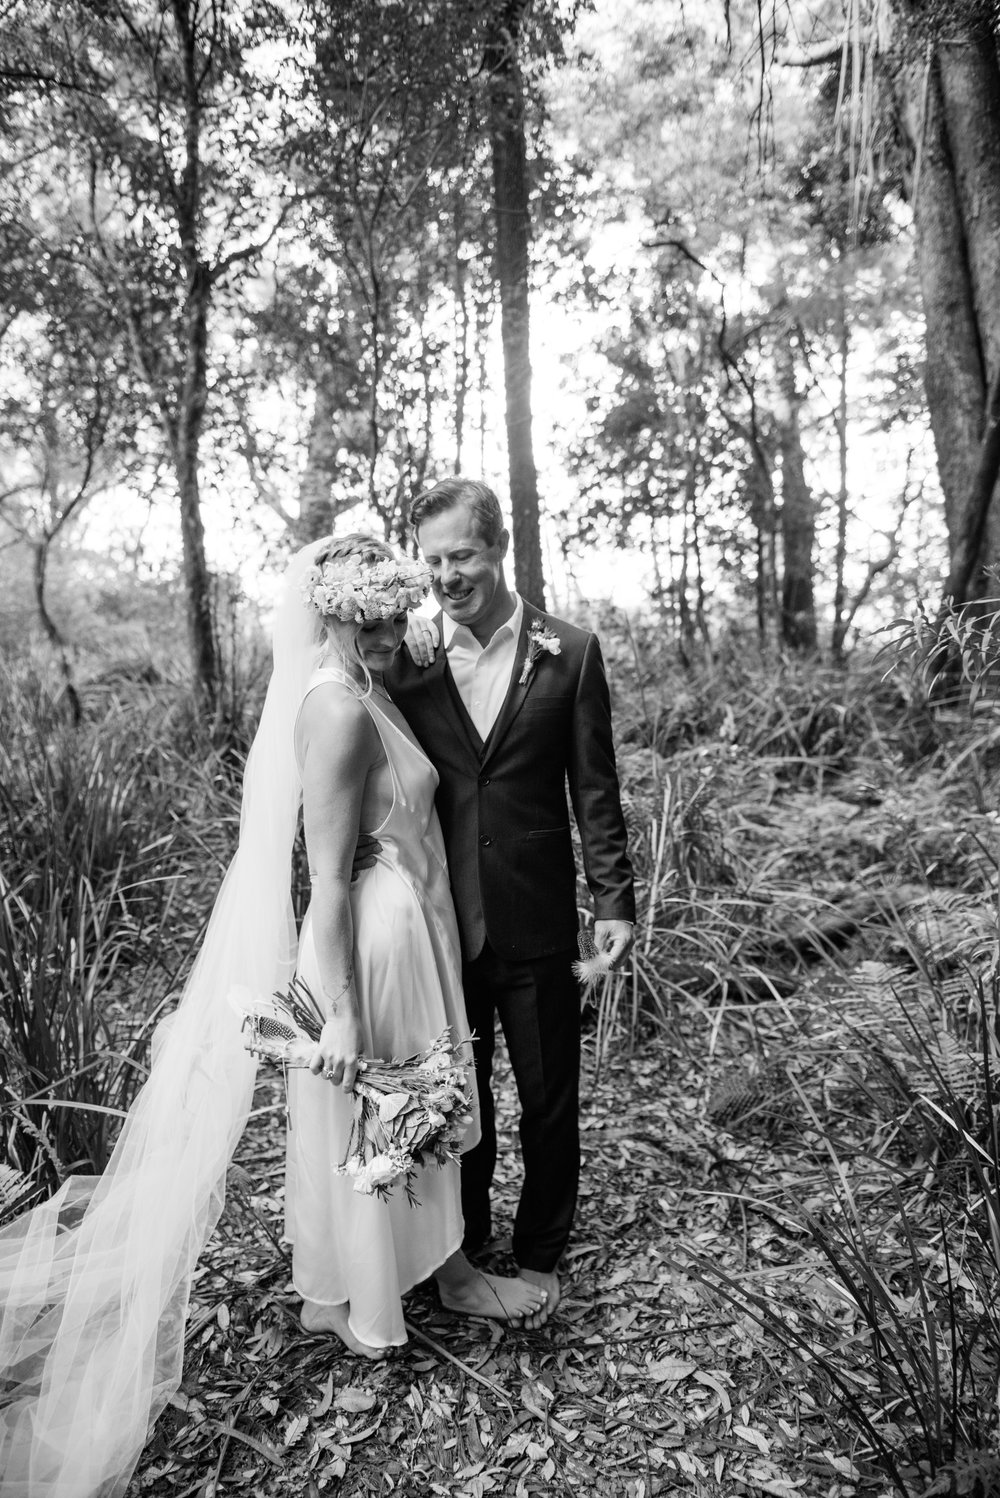 Carla and Luke- wedding photographer, byron bay wedding and family photographer, tweed heads wedding and family photography-332.jpg